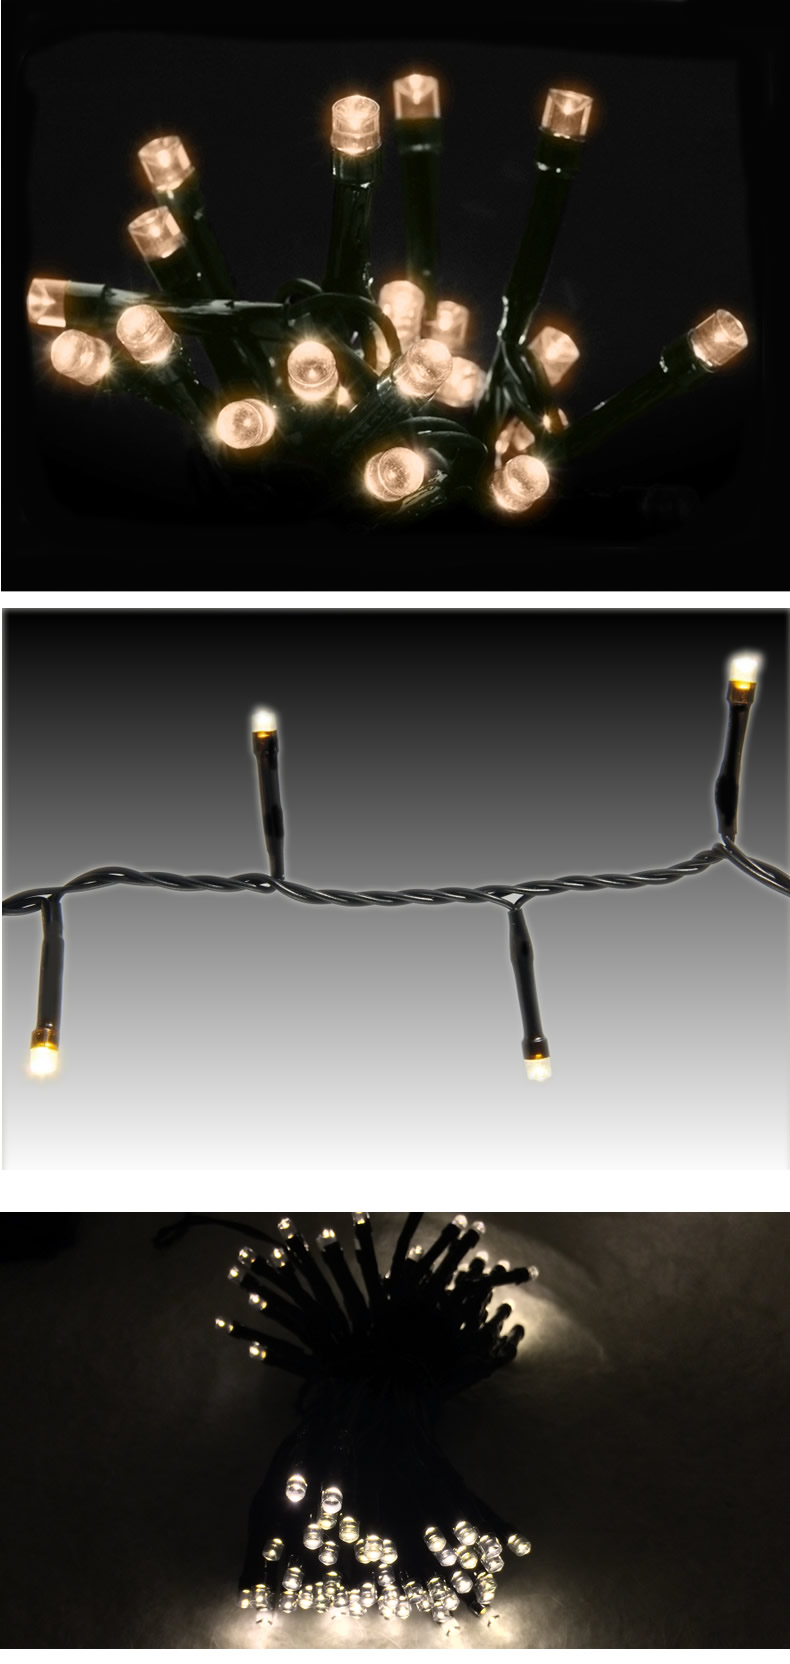 led bilder weihnachten bilder deko weihnachten led. Black Bedroom Furniture Sets. Home Design Ideas